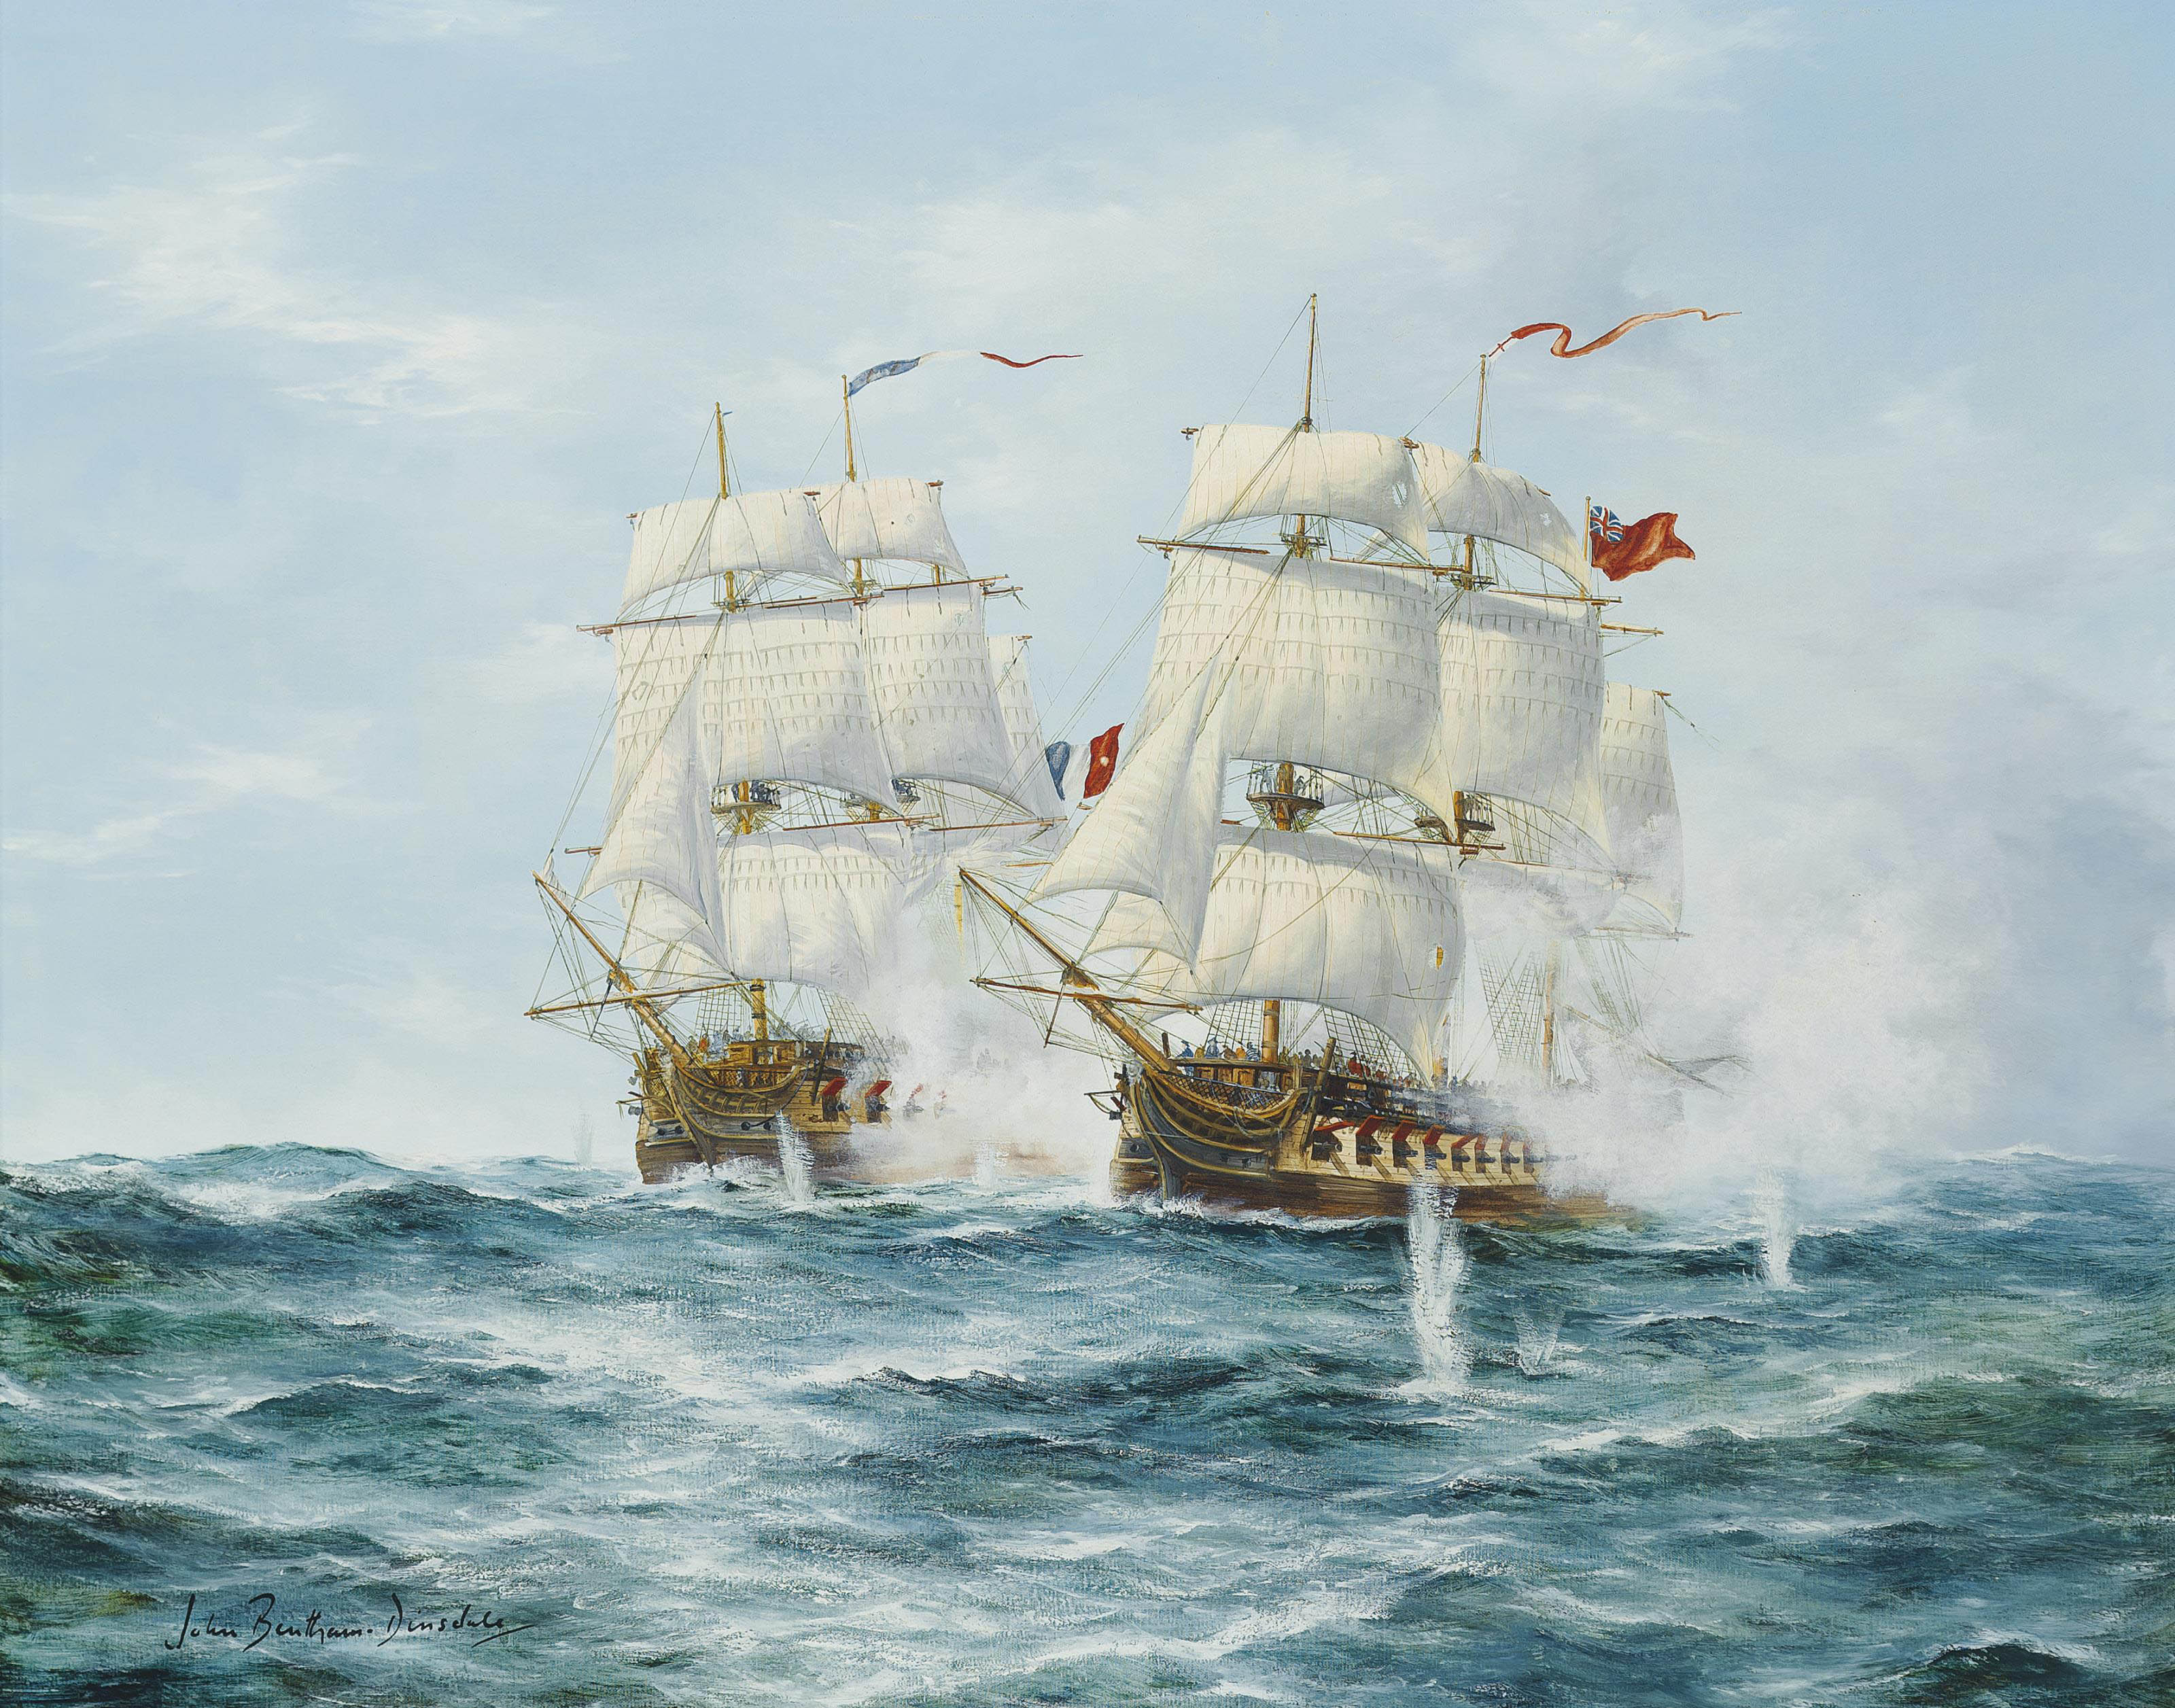 The engagement between H.M.S. Dryad and Prosperine, 13th June 1796